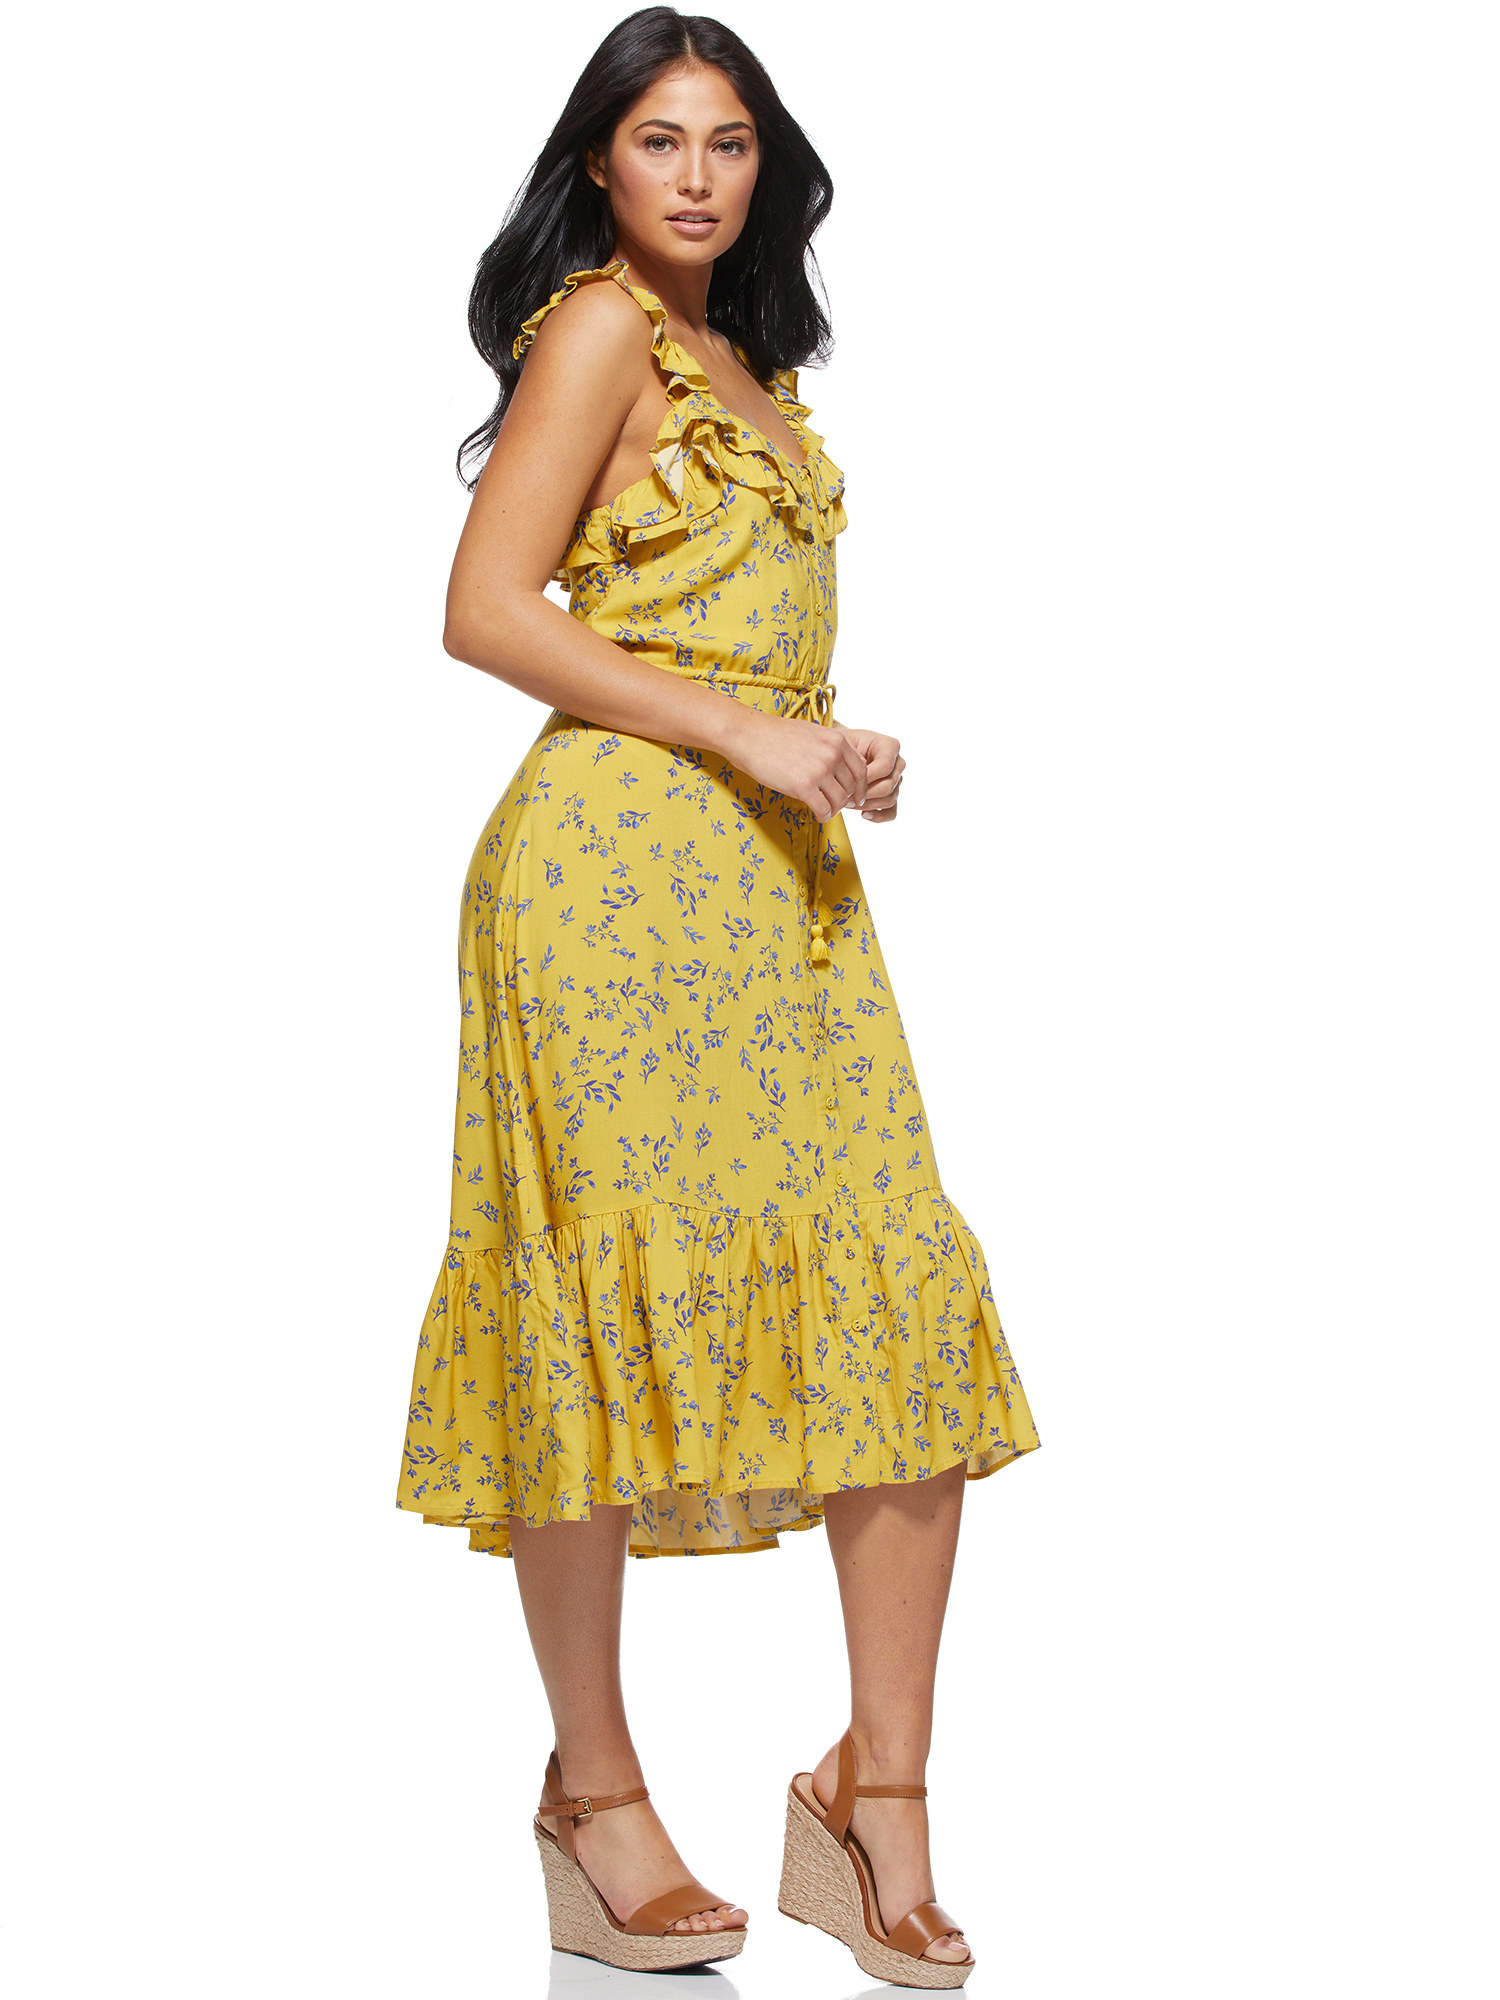 a model in the yellow dress with small florals on it